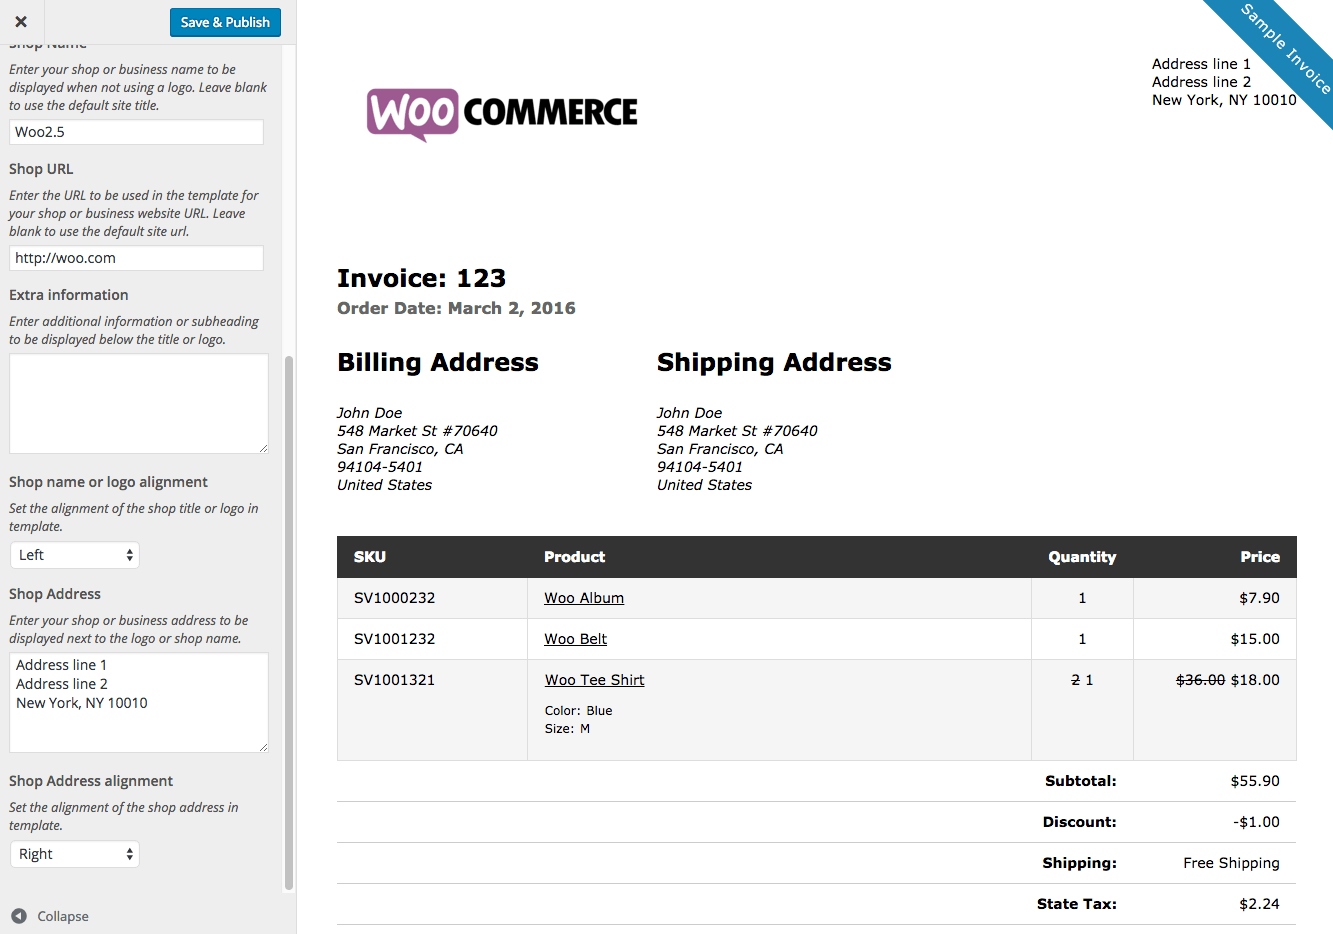 Pigbrotherus  Winning Woocommerce Print Invoices Amp Packing Lists  Woocommerce Docs With Interesting Woocommerce Print Invoices  Packing Lists Customizer With Enchanting Redbox Receipt Also Buy Receipt Book In Addition Best Receipt Scanning App And Cash Receipt Template Free As Well As Star Receipt Printer Paper Additionally Private Car Sale Receipt From Docswoocommercecom With Pigbrotherus  Interesting Woocommerce Print Invoices Amp Packing Lists  Woocommerce Docs With Enchanting Woocommerce Print Invoices  Packing Lists Customizer And Winning Redbox Receipt Also Buy Receipt Book In Addition Best Receipt Scanning App From Docswoocommercecom